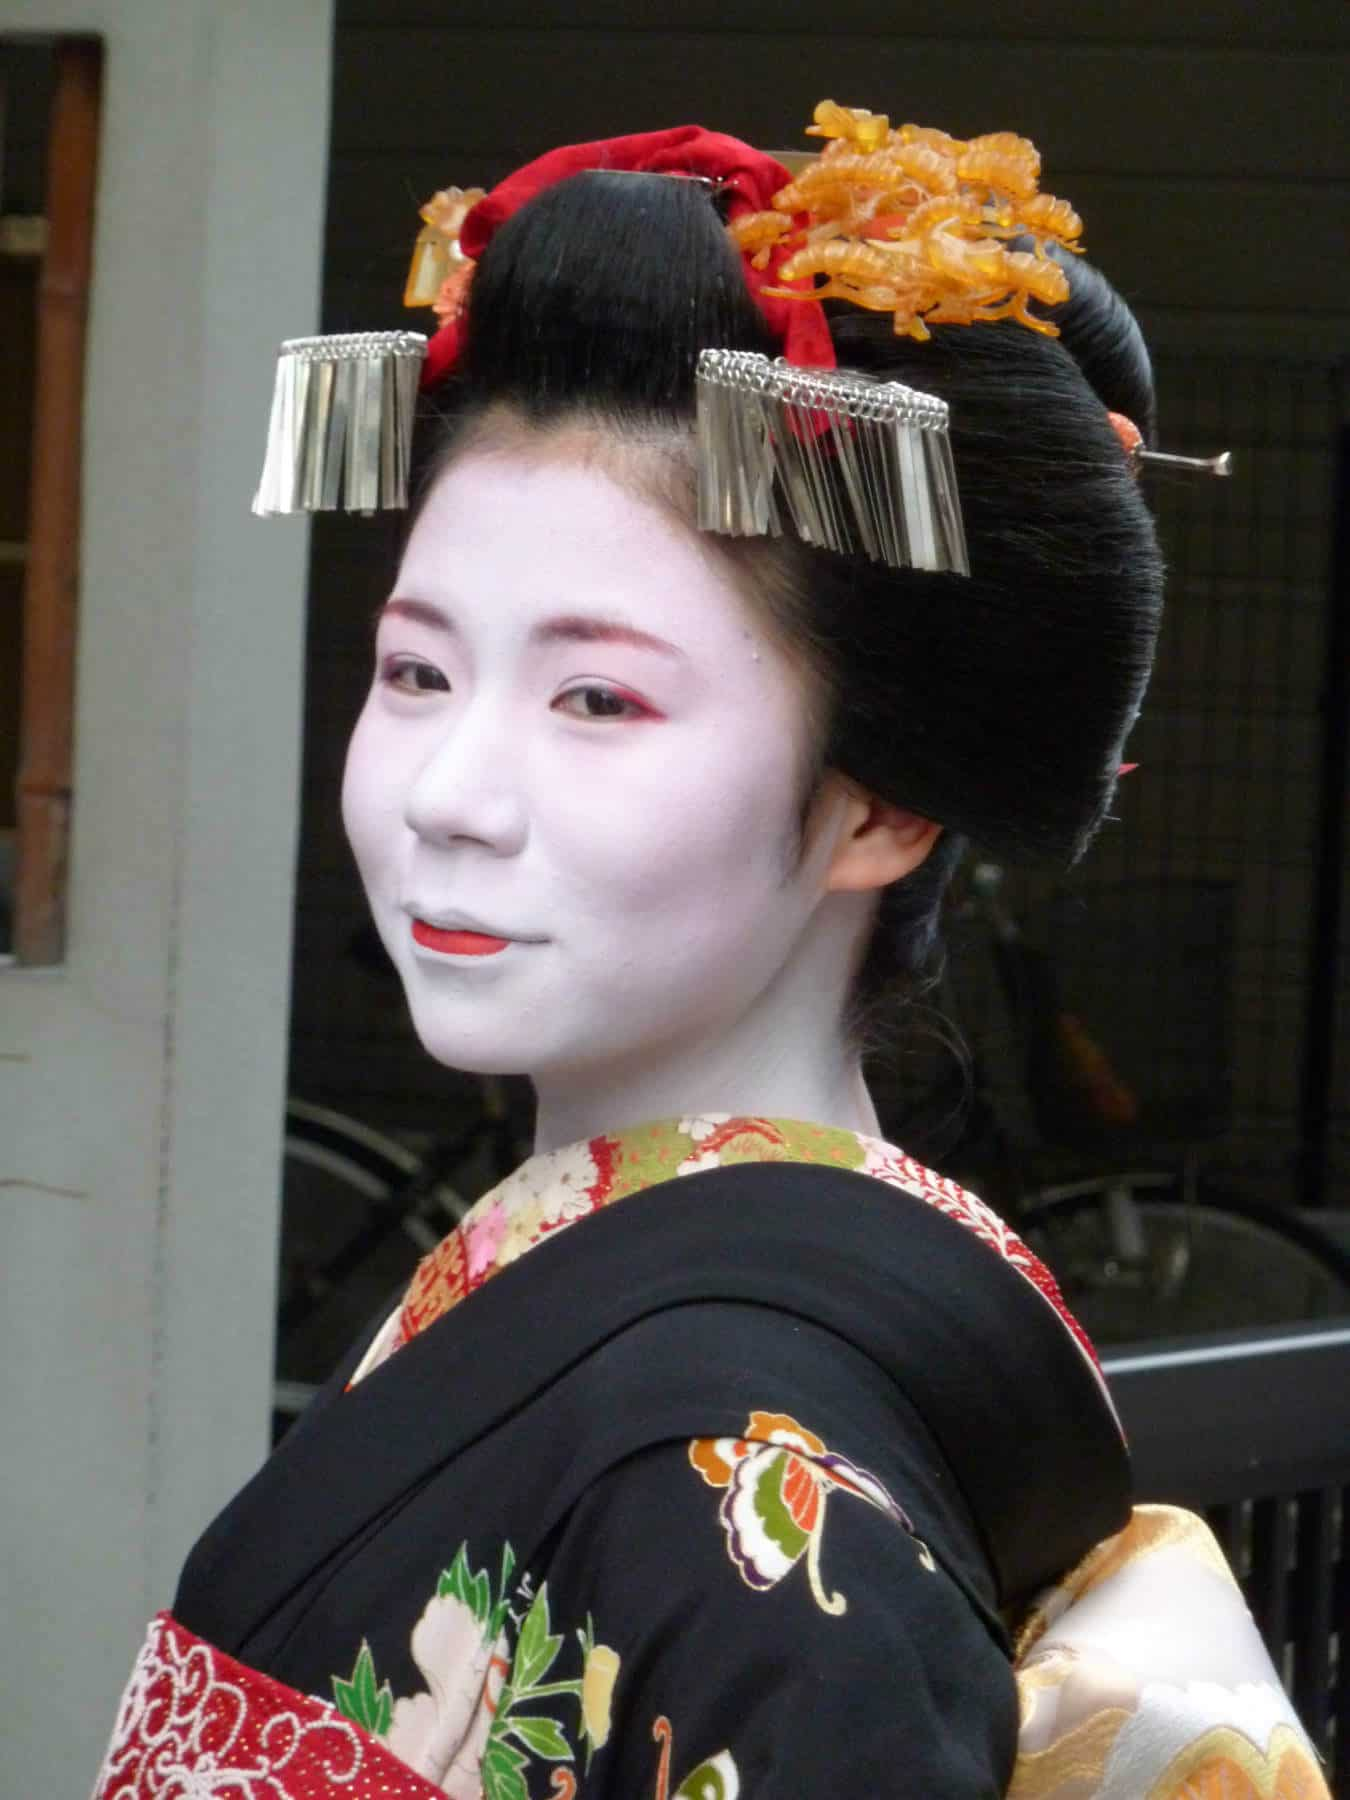 15-year-old maiko Ko-ume all dressed up for her debut